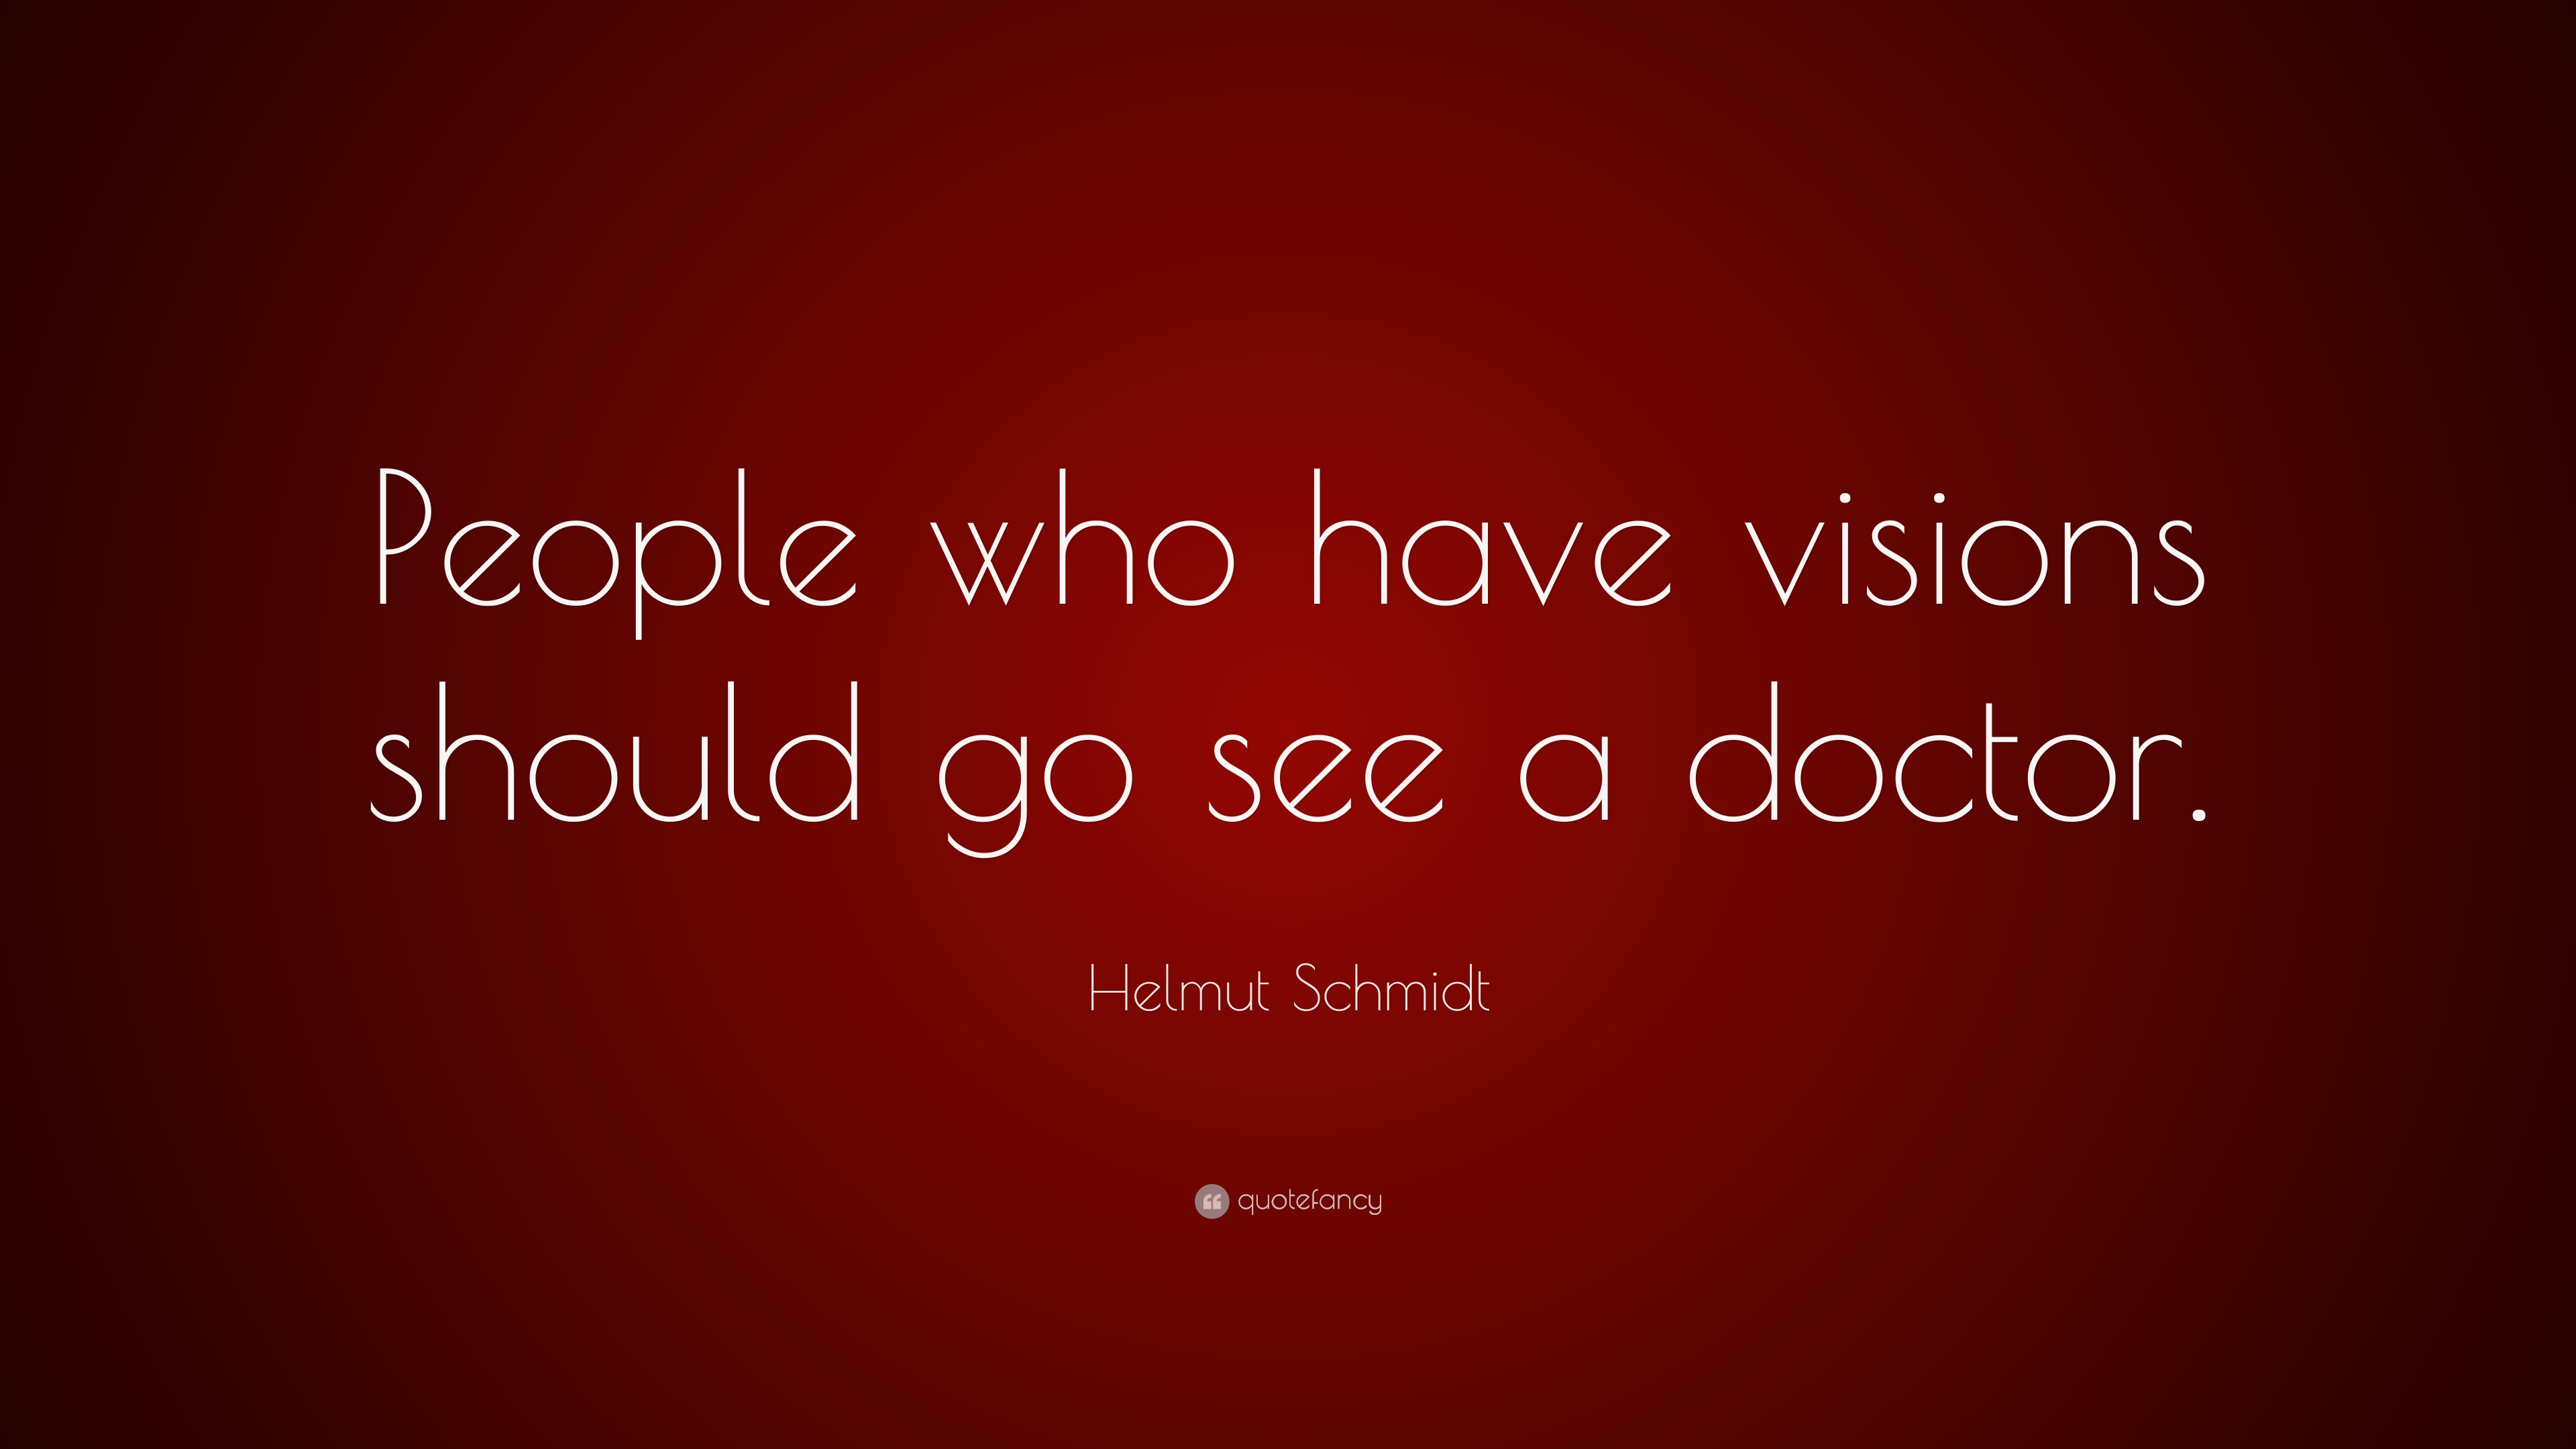 Doctor Who Quotes About Love Helmut Schmidt Quotes 15 Wallpapers  Quotefancy